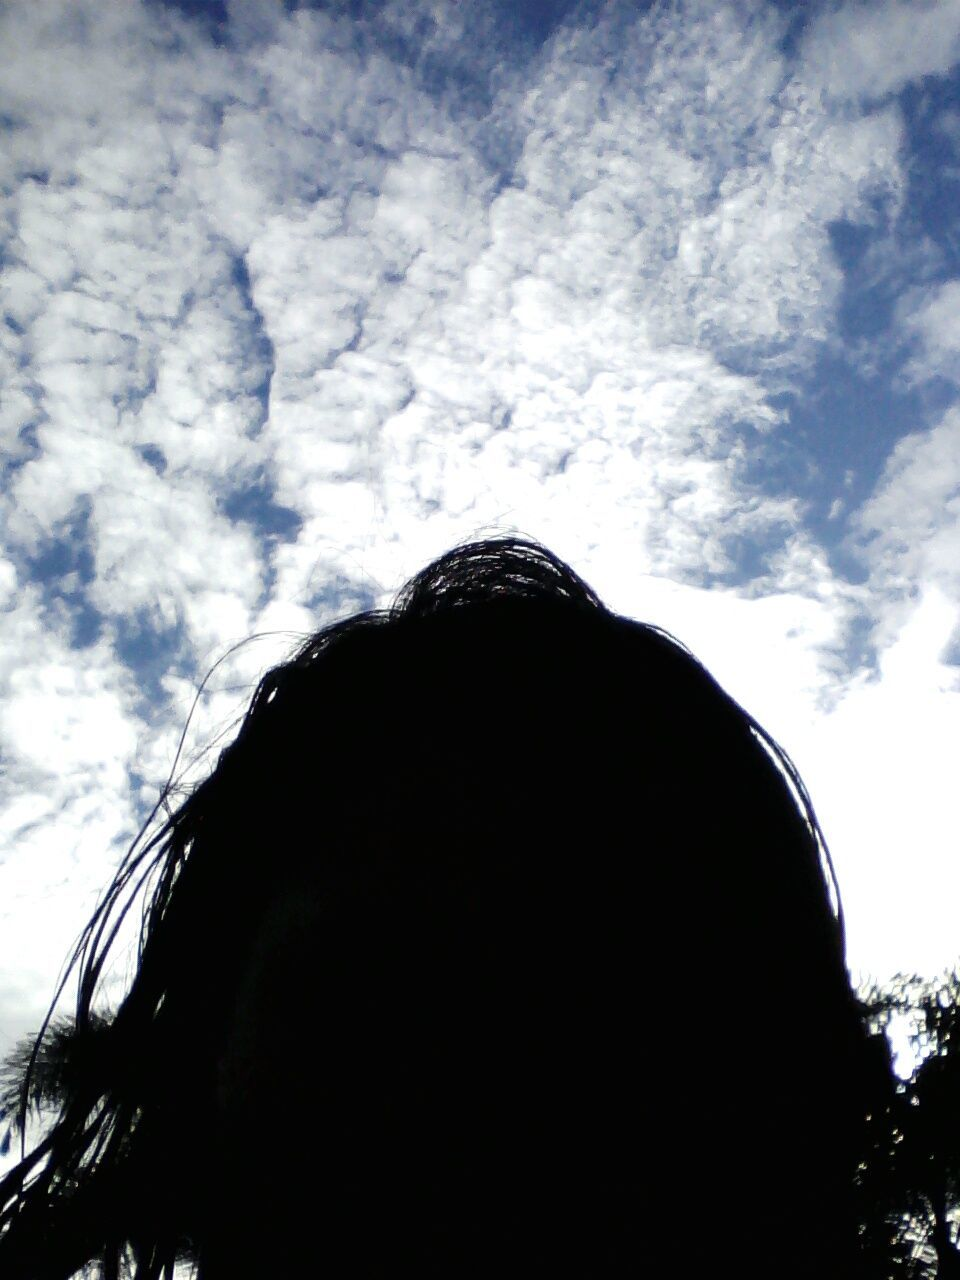 sky, low angle view, cloud - sky, one person, day, silhouette, real people, outdoors, tree, nature, close-up, people